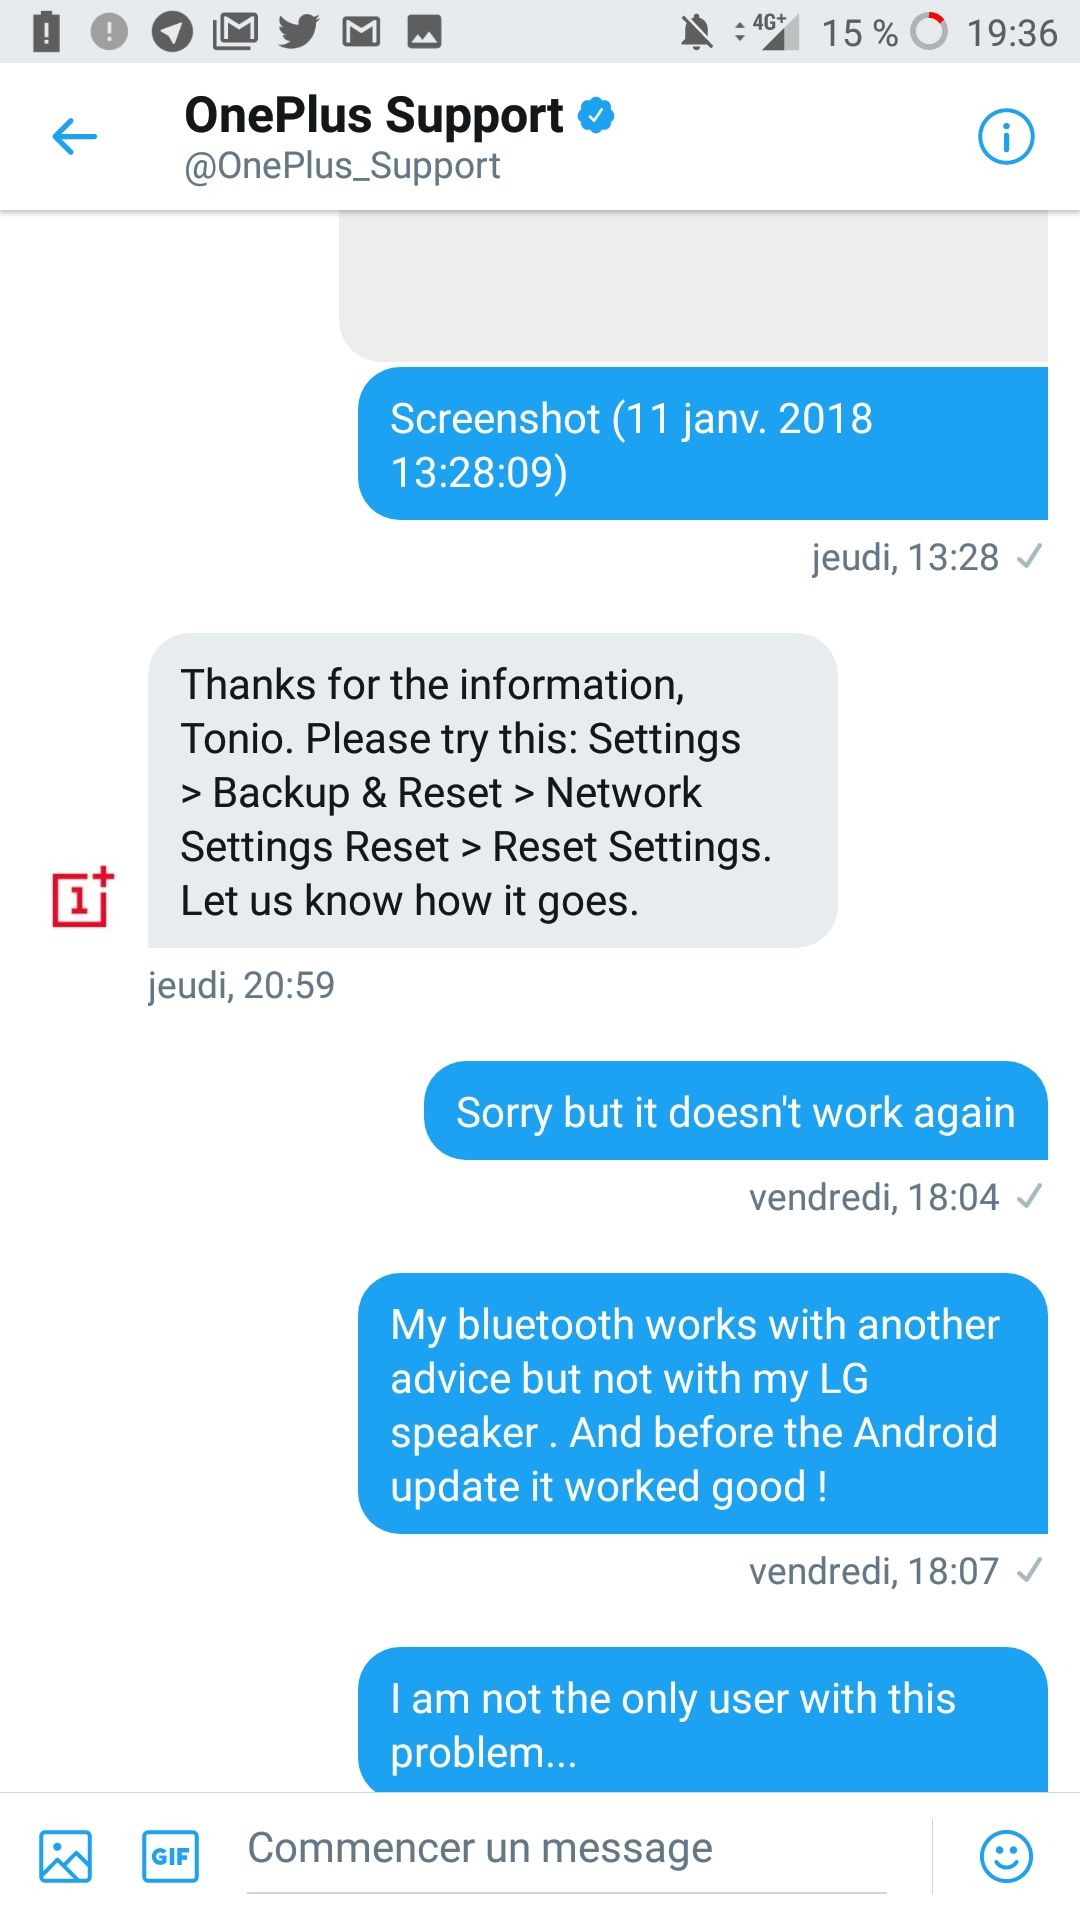 Problem with bluetooth connexion to LG speaker - OnePlus Community